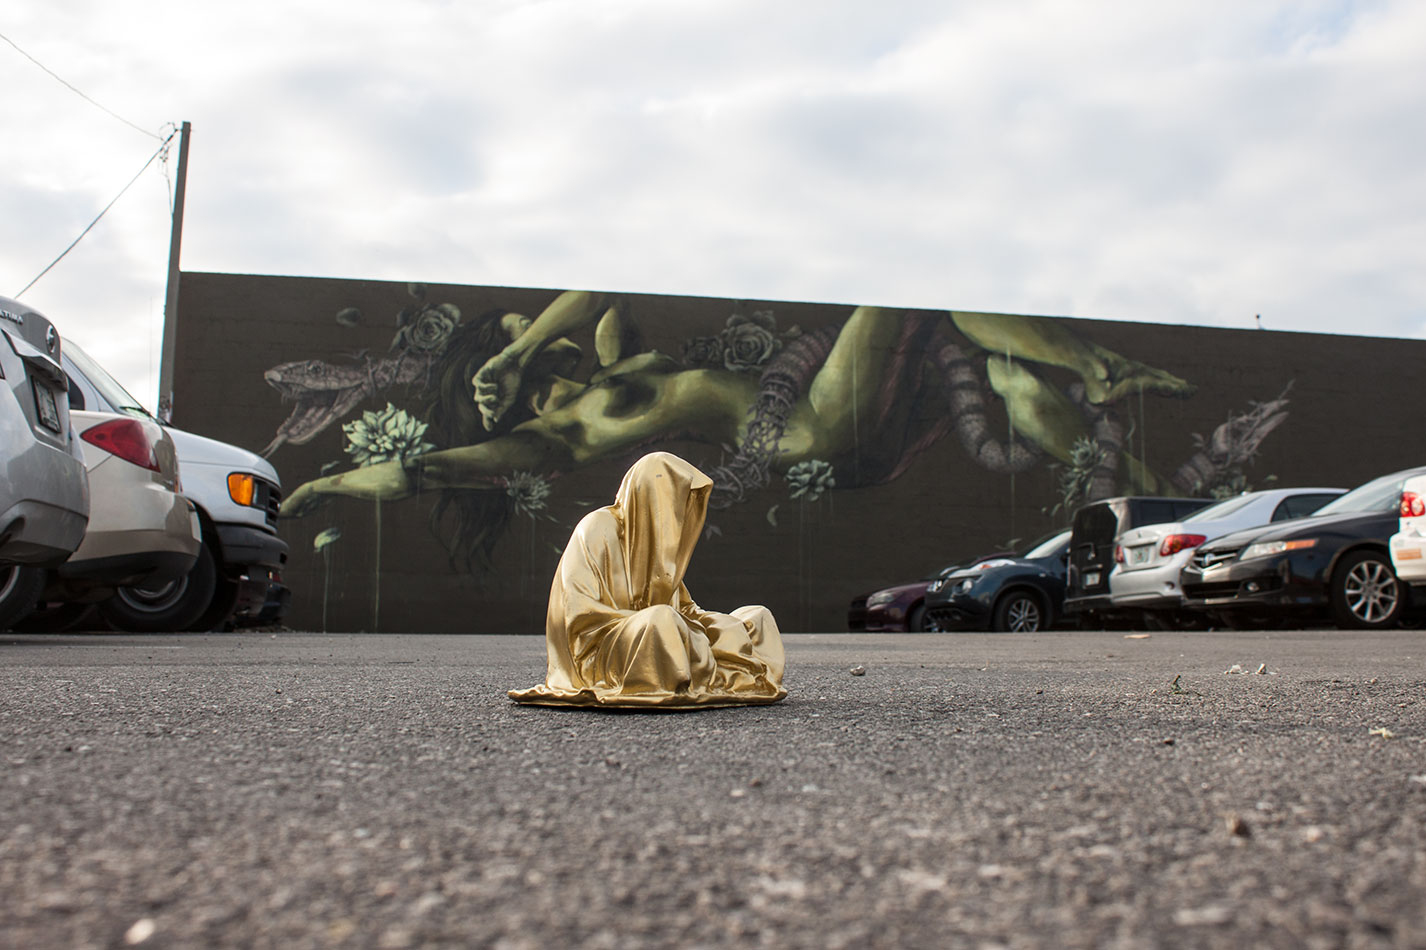 public-art-basel-miami-beach-fair-usa-florida-bass-museum-guardians-of-time-manfred-kili-kielnhofer-contemporary-fine-art-modern-arts-design-antiques-sculpture-6652